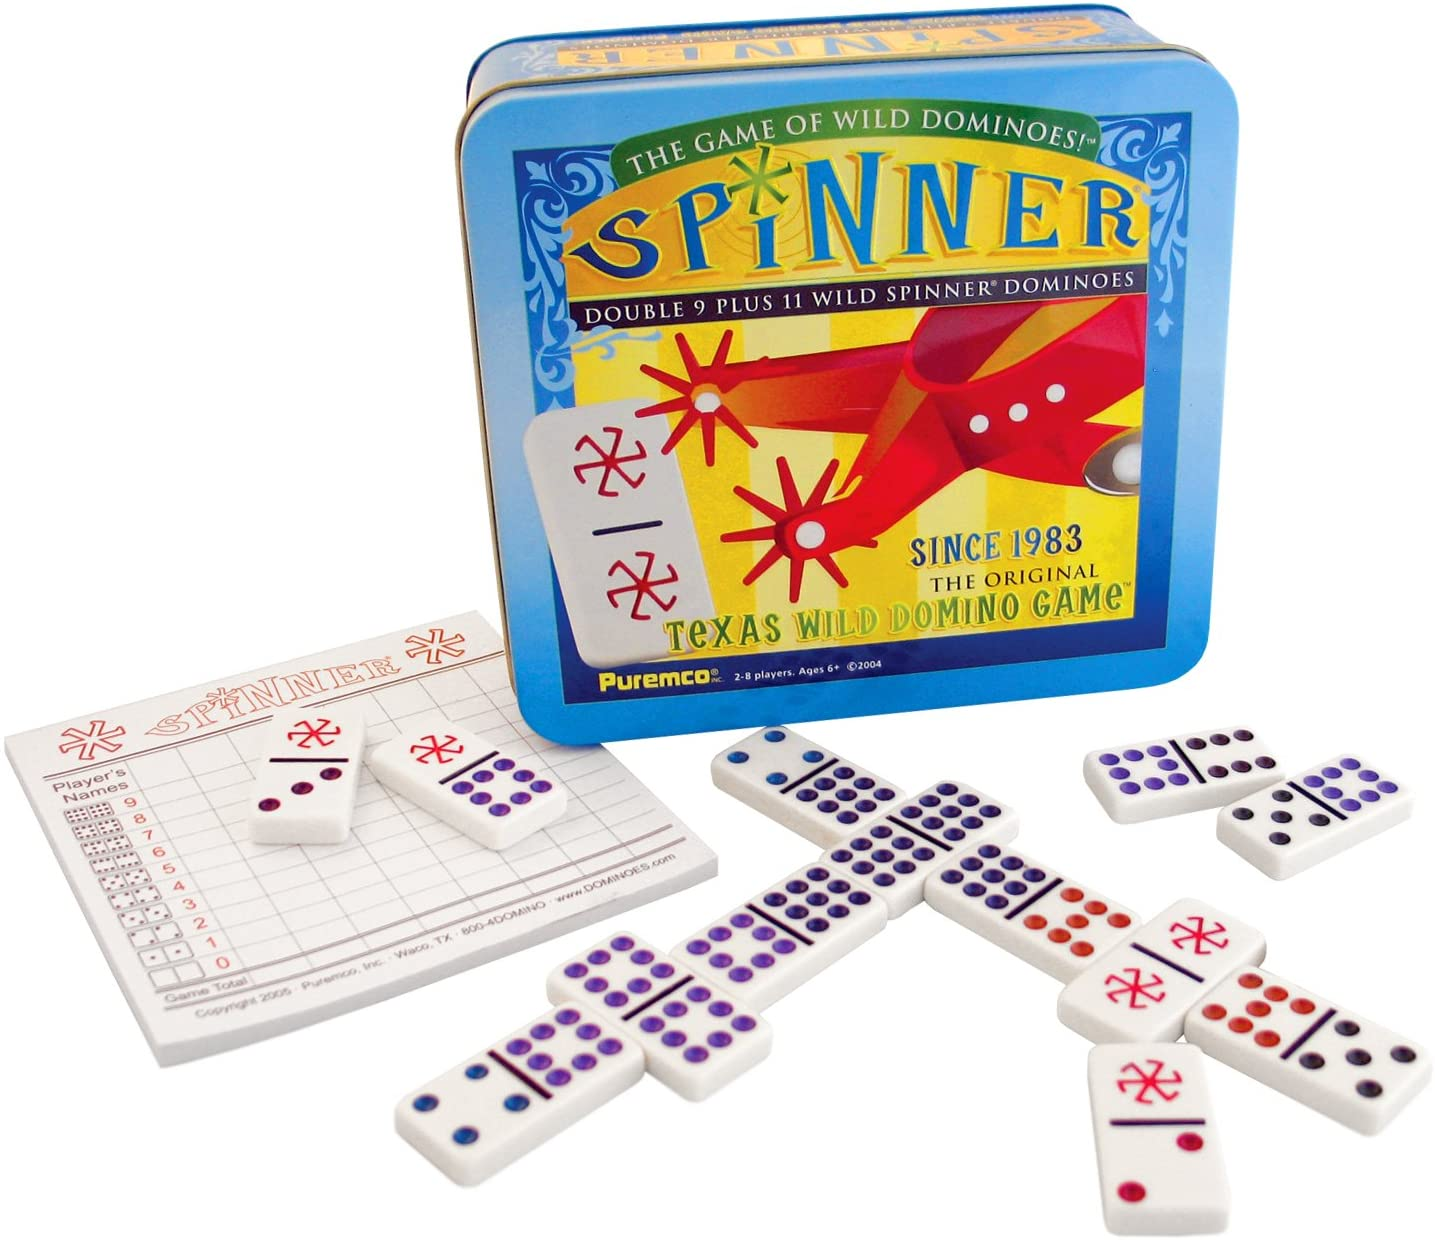 Spinner: The Game of Wild Dominoes, Double 9 Set Plus 11 Wild Spinner Tiles Board Game, Tin Box Carrying Case